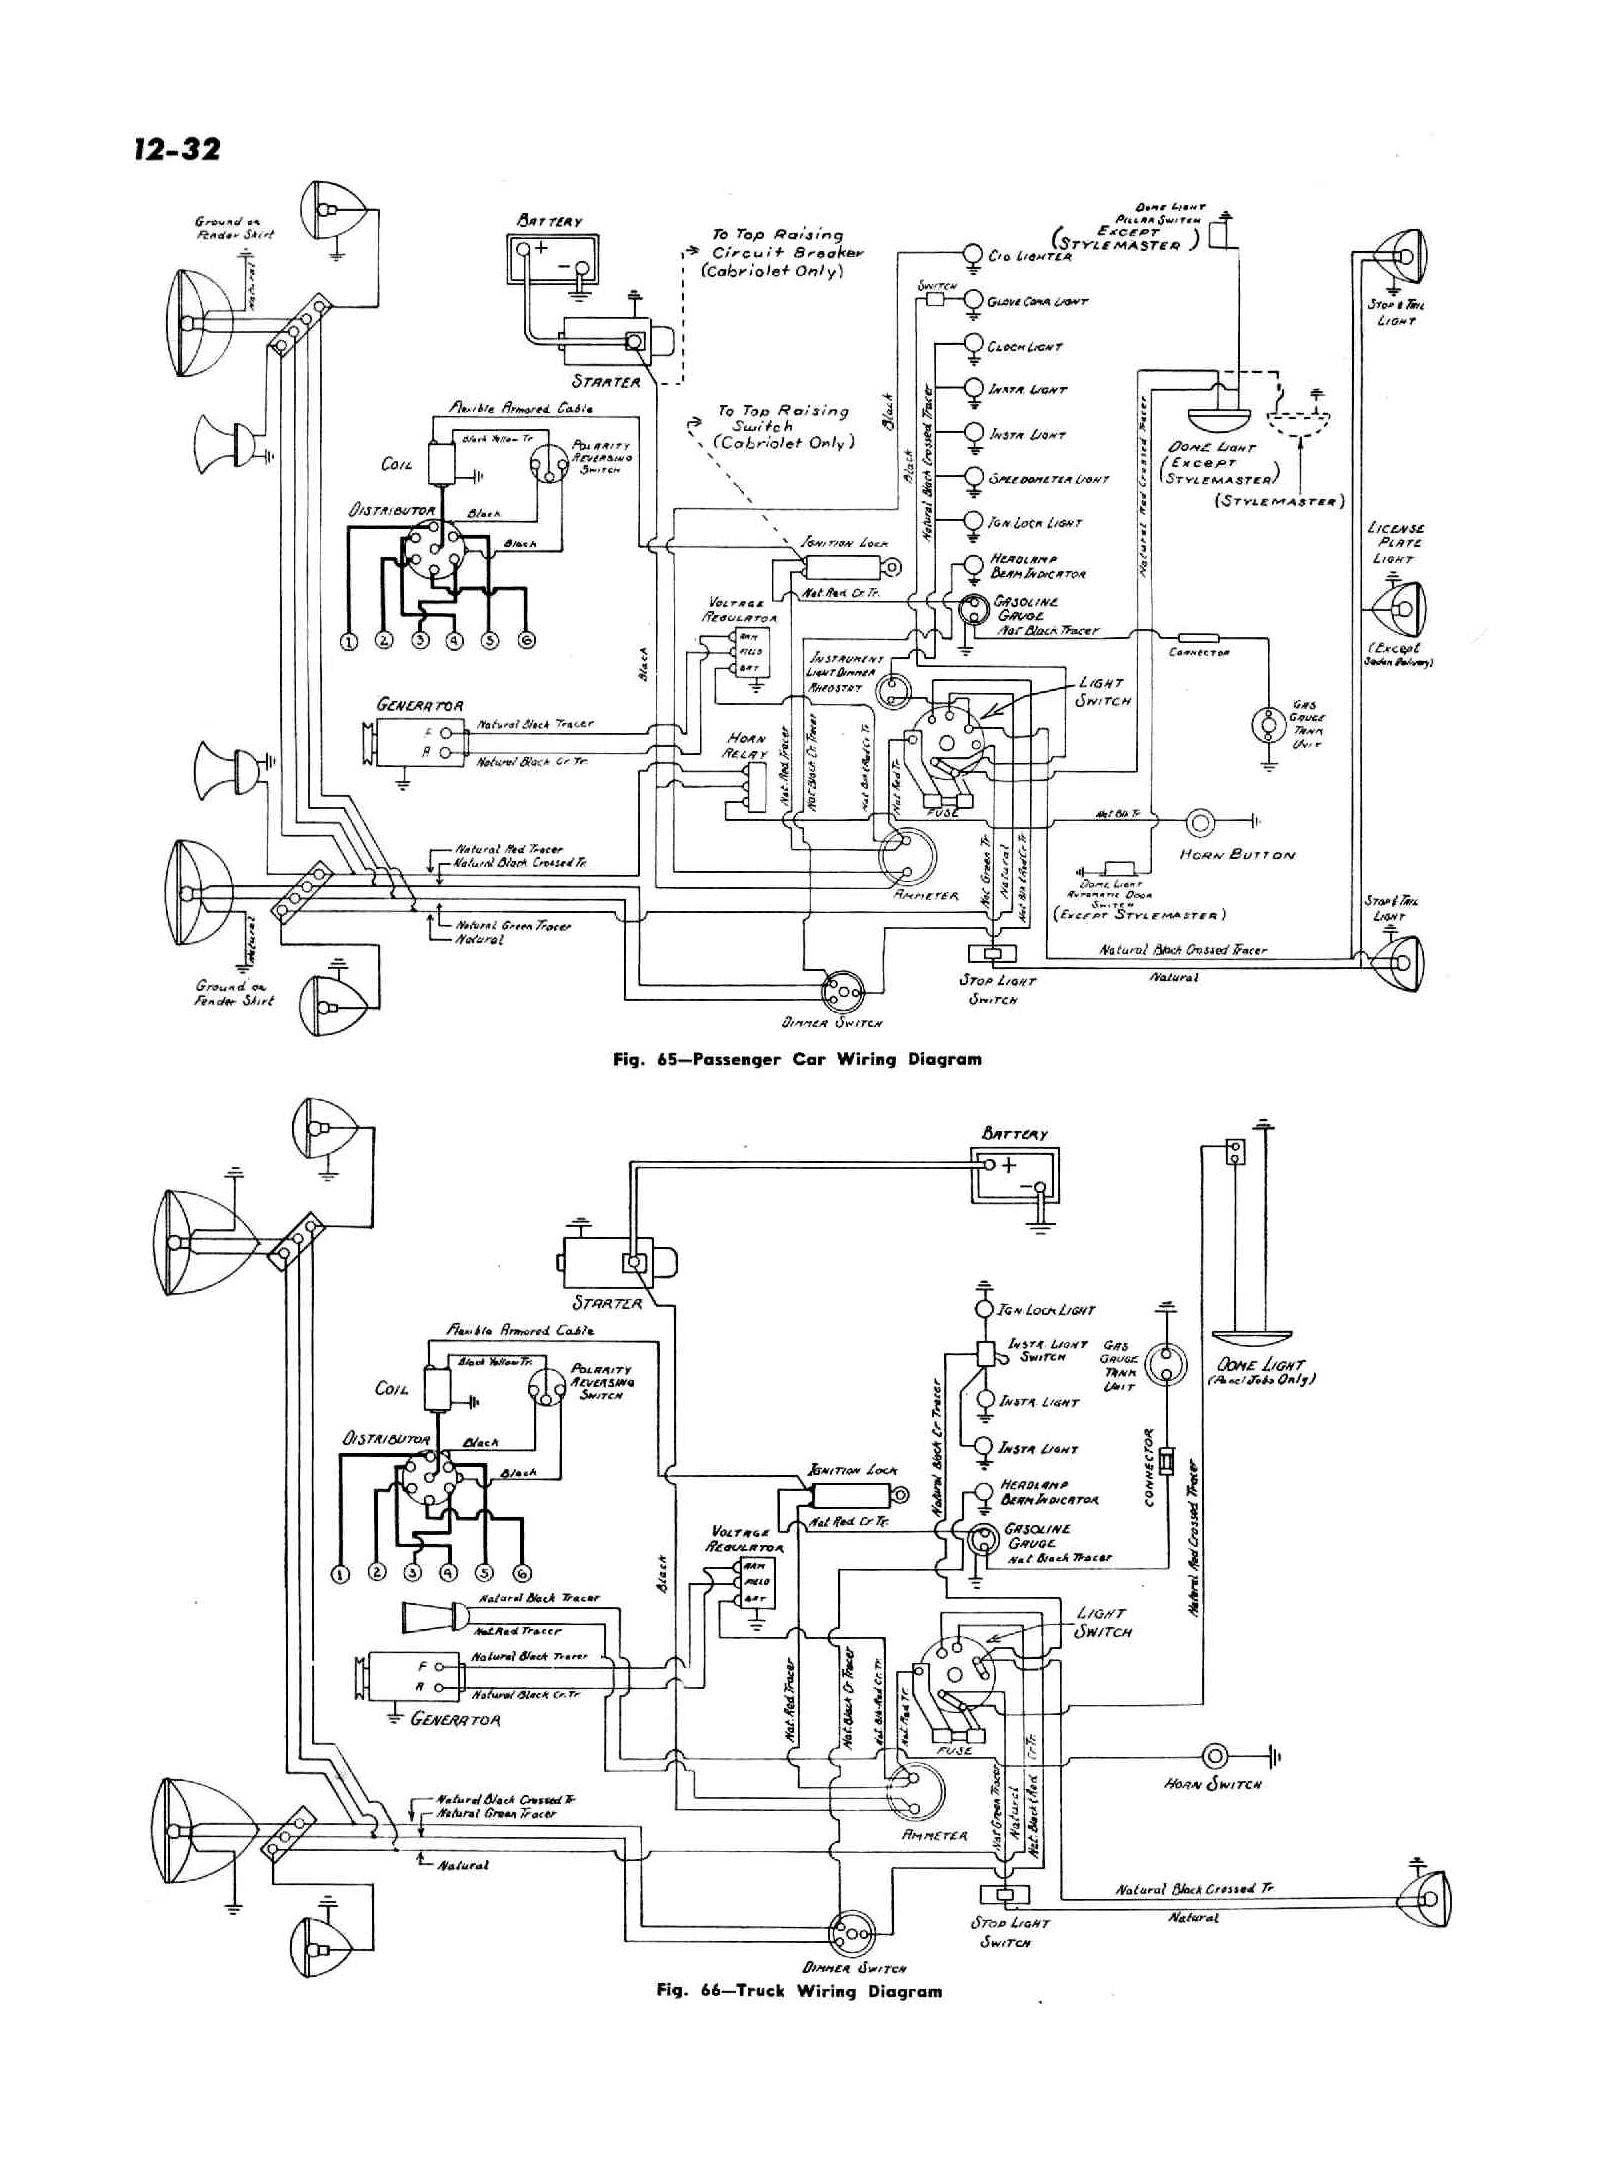 1979 Chevy Nova Wiring Diagram Schematic Diagrams 86 1970